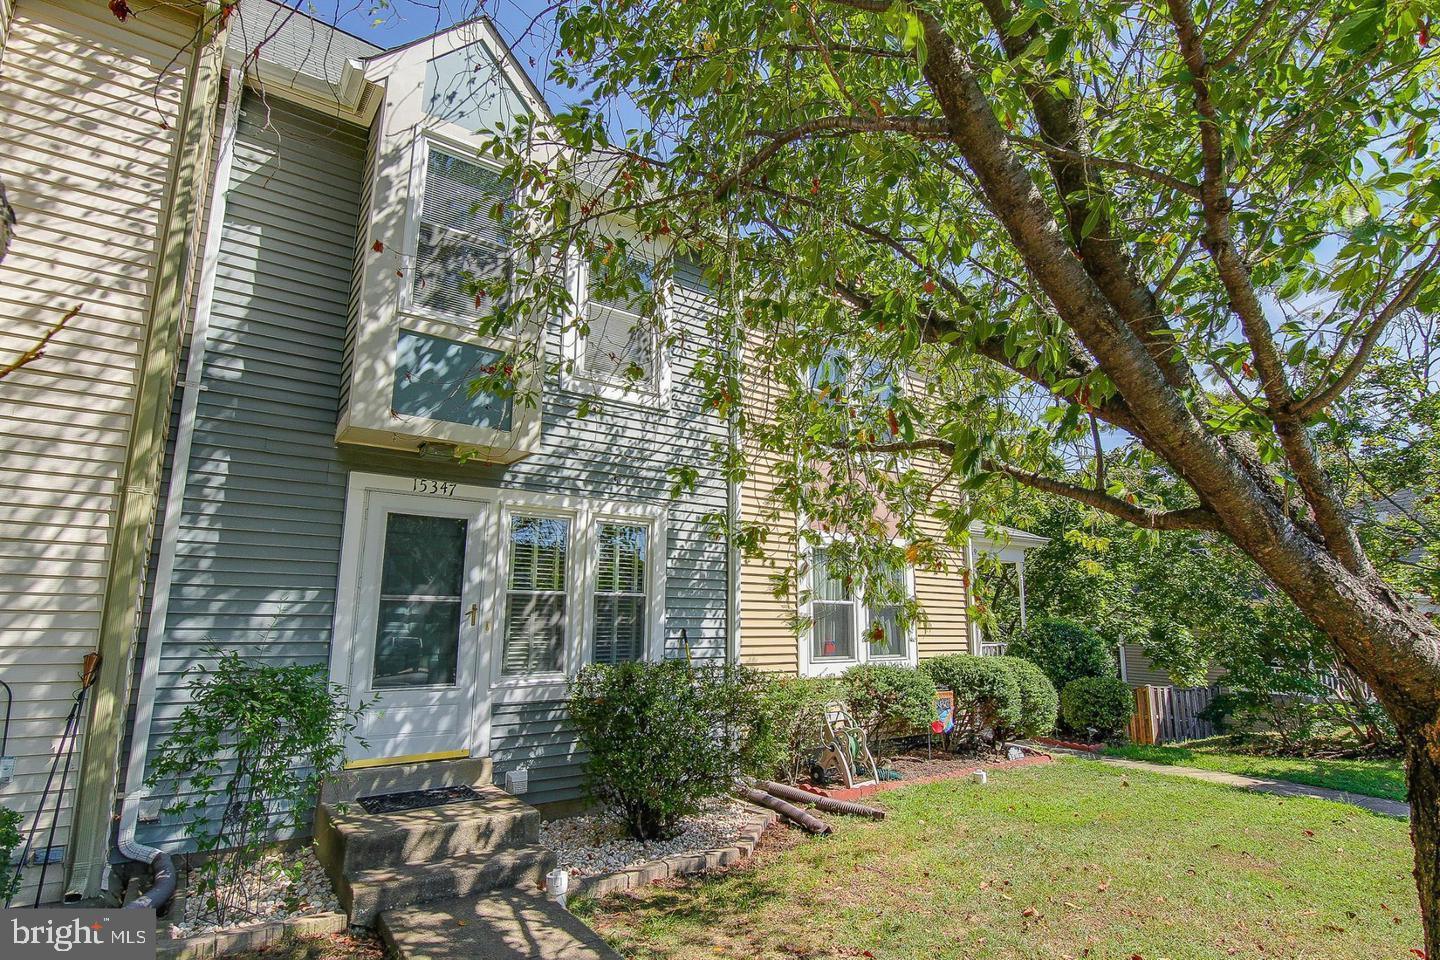 Beautiful well maintained townhome in a cul-de-sac, close to shopping, transportation, and more. This 2 bedroom, 2 full bath home features a beautiful kitchen with hardwood floors, stainless steel app., Silestone counters, upgraded oak cabinets, and huge pantry. Home has neutral paint, composite deck, french doors, fenced in back yard & patio, backs to woods, newer carpet & much more! A MUST SEE.   ALL OFFERS DUE BY MONDAY 4/29/19 @12:00 PM.